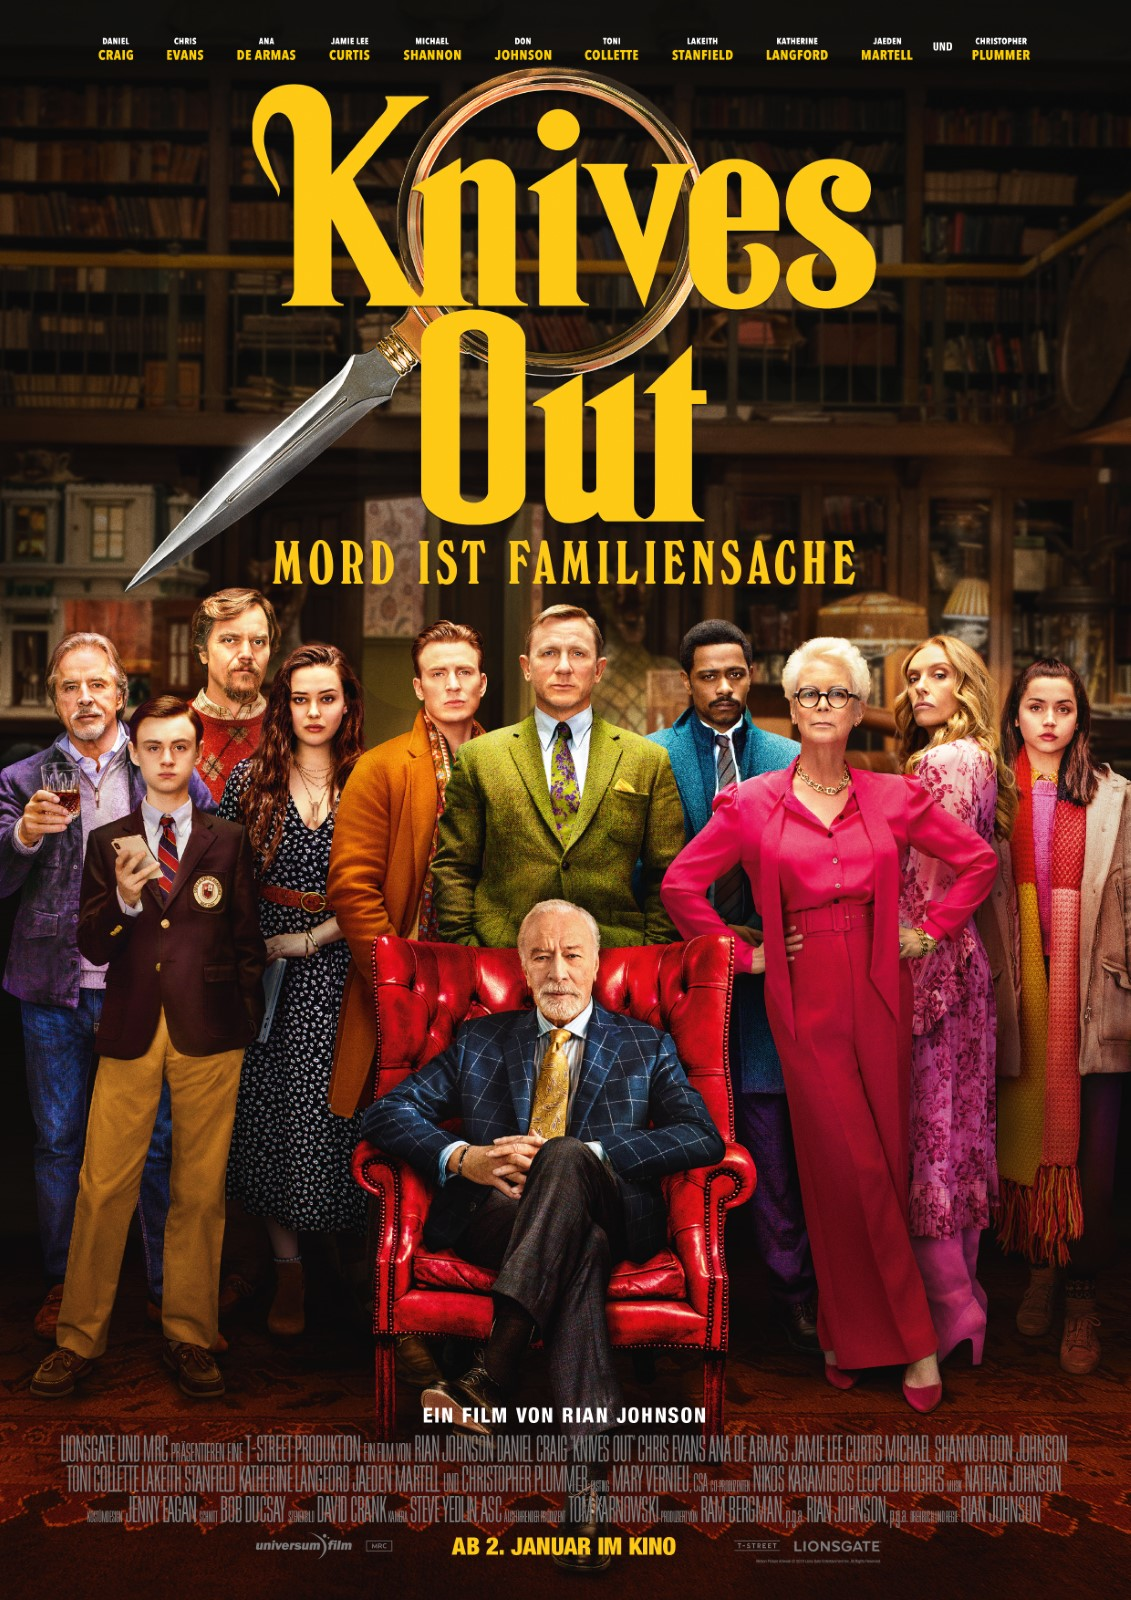 Union Filmtheater : Knives Out